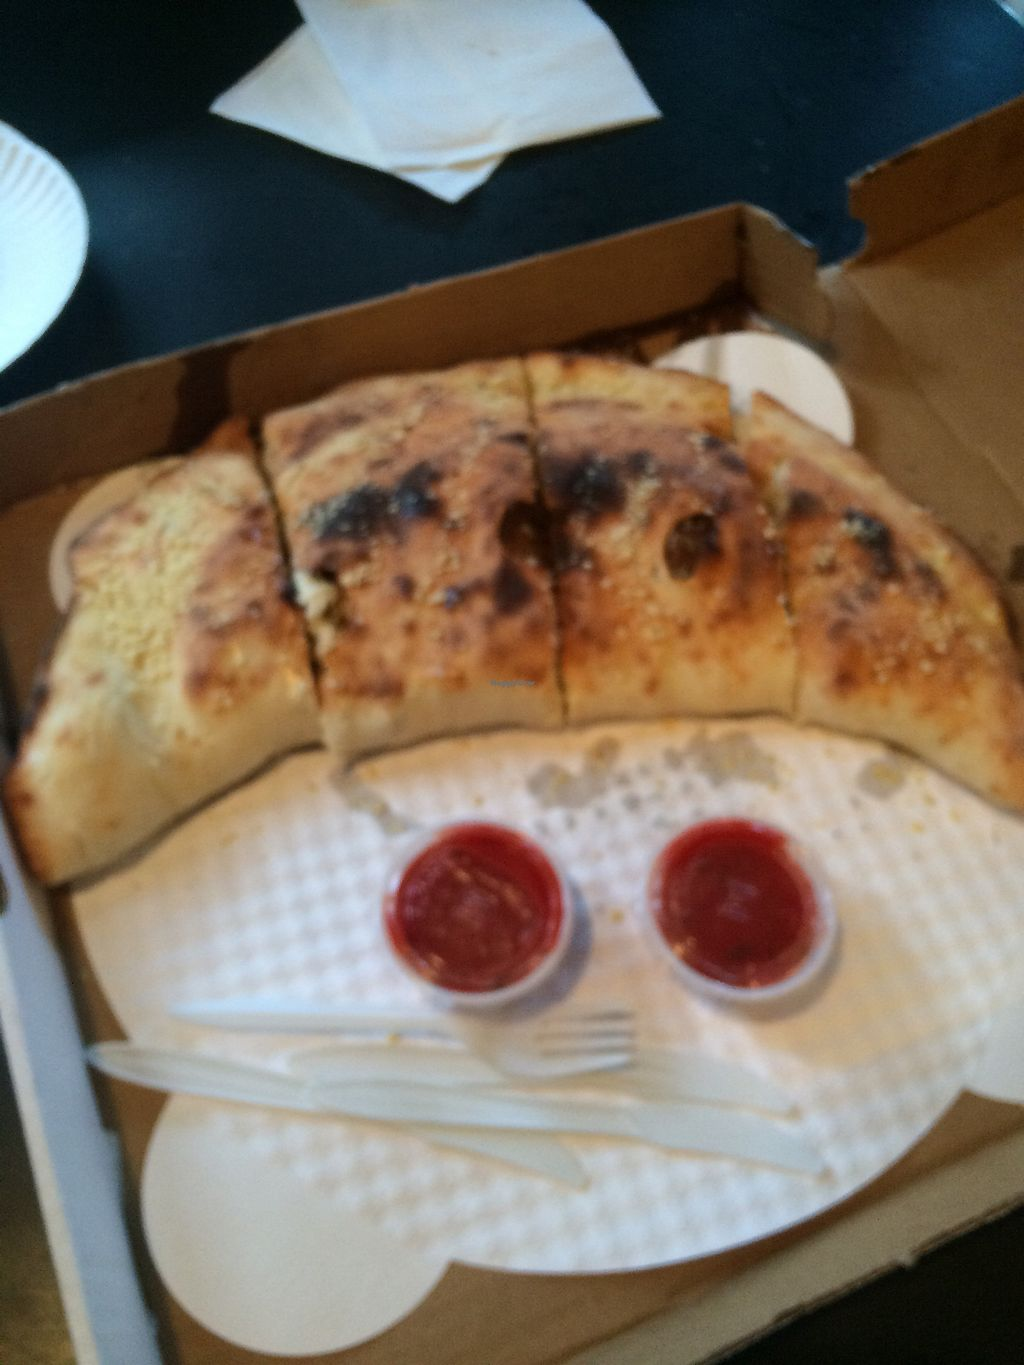 "Photo of Screamer's Pizzeria  by <a href=""/members/profile/fruitiJulie"">fruitiJulie</a> <br/>Calzone with almond ricotta cheese and vegan pepperoni  <br/> January 1, 2018  - <a href='/contact/abuse/image/75081/341566'>Report</a>"